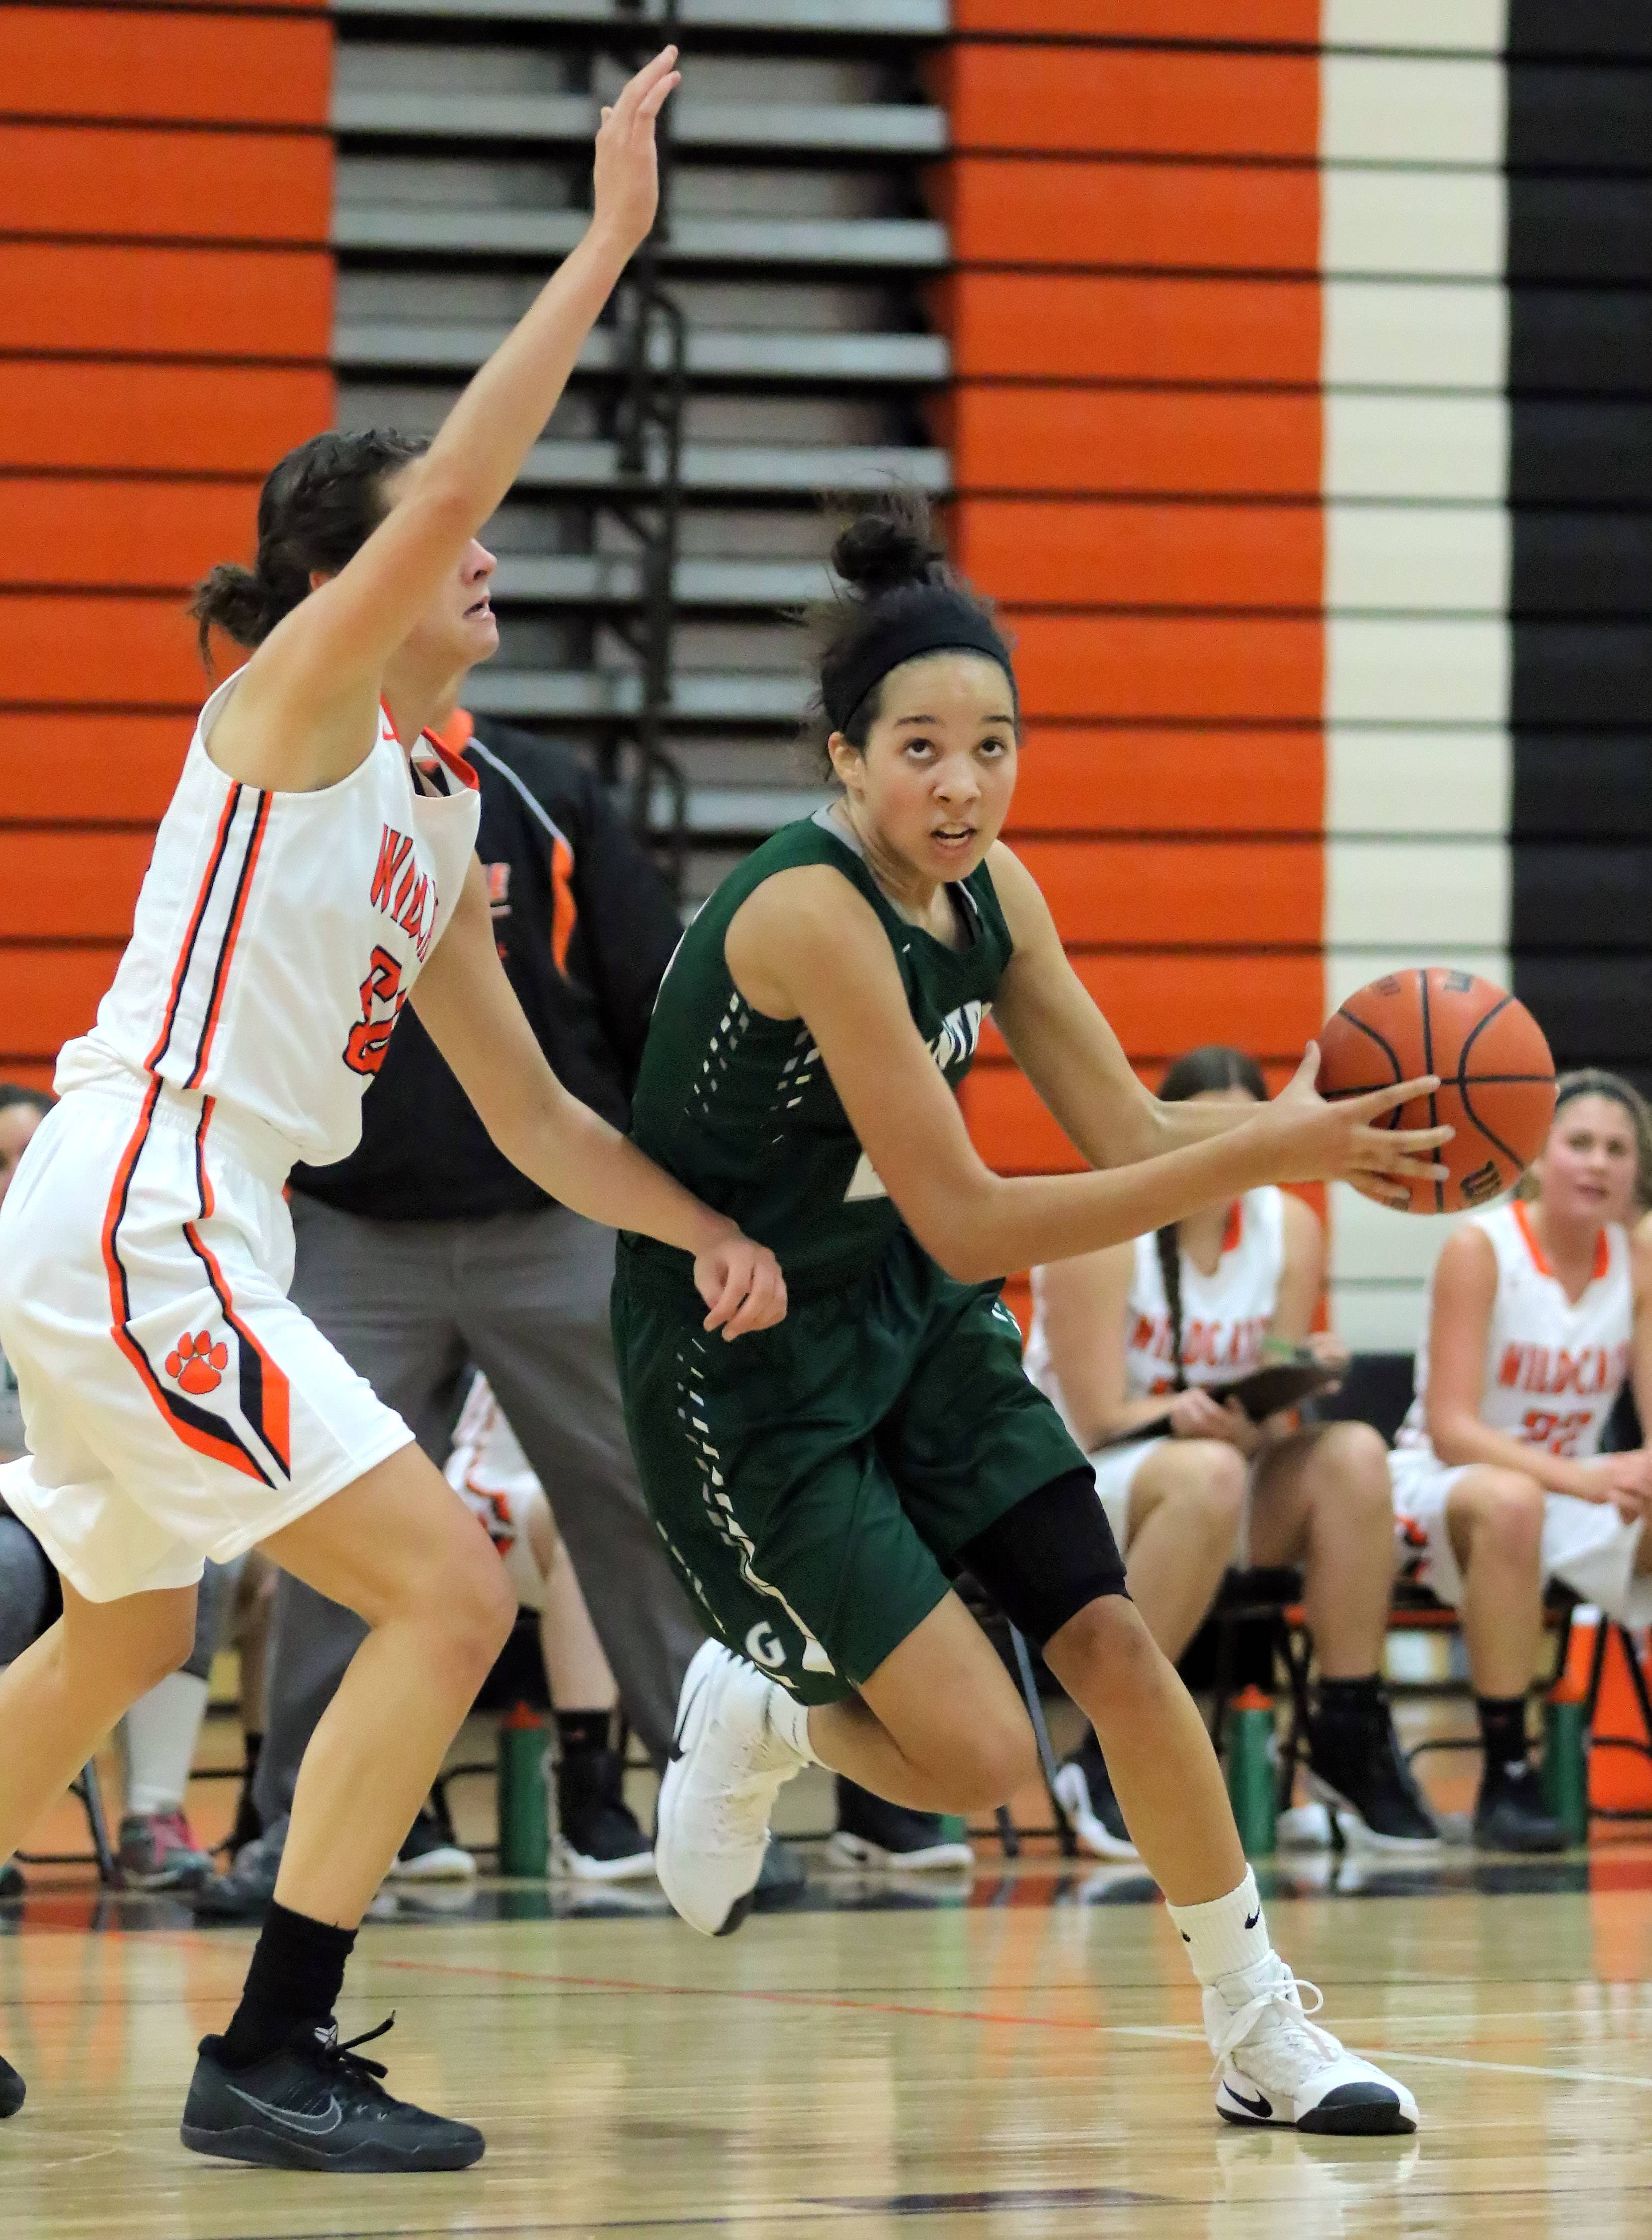 Grayslake Central's Ania Barnes, right, drives on Libertyville's Claire Keefe on Tuesday night at Libertyville.